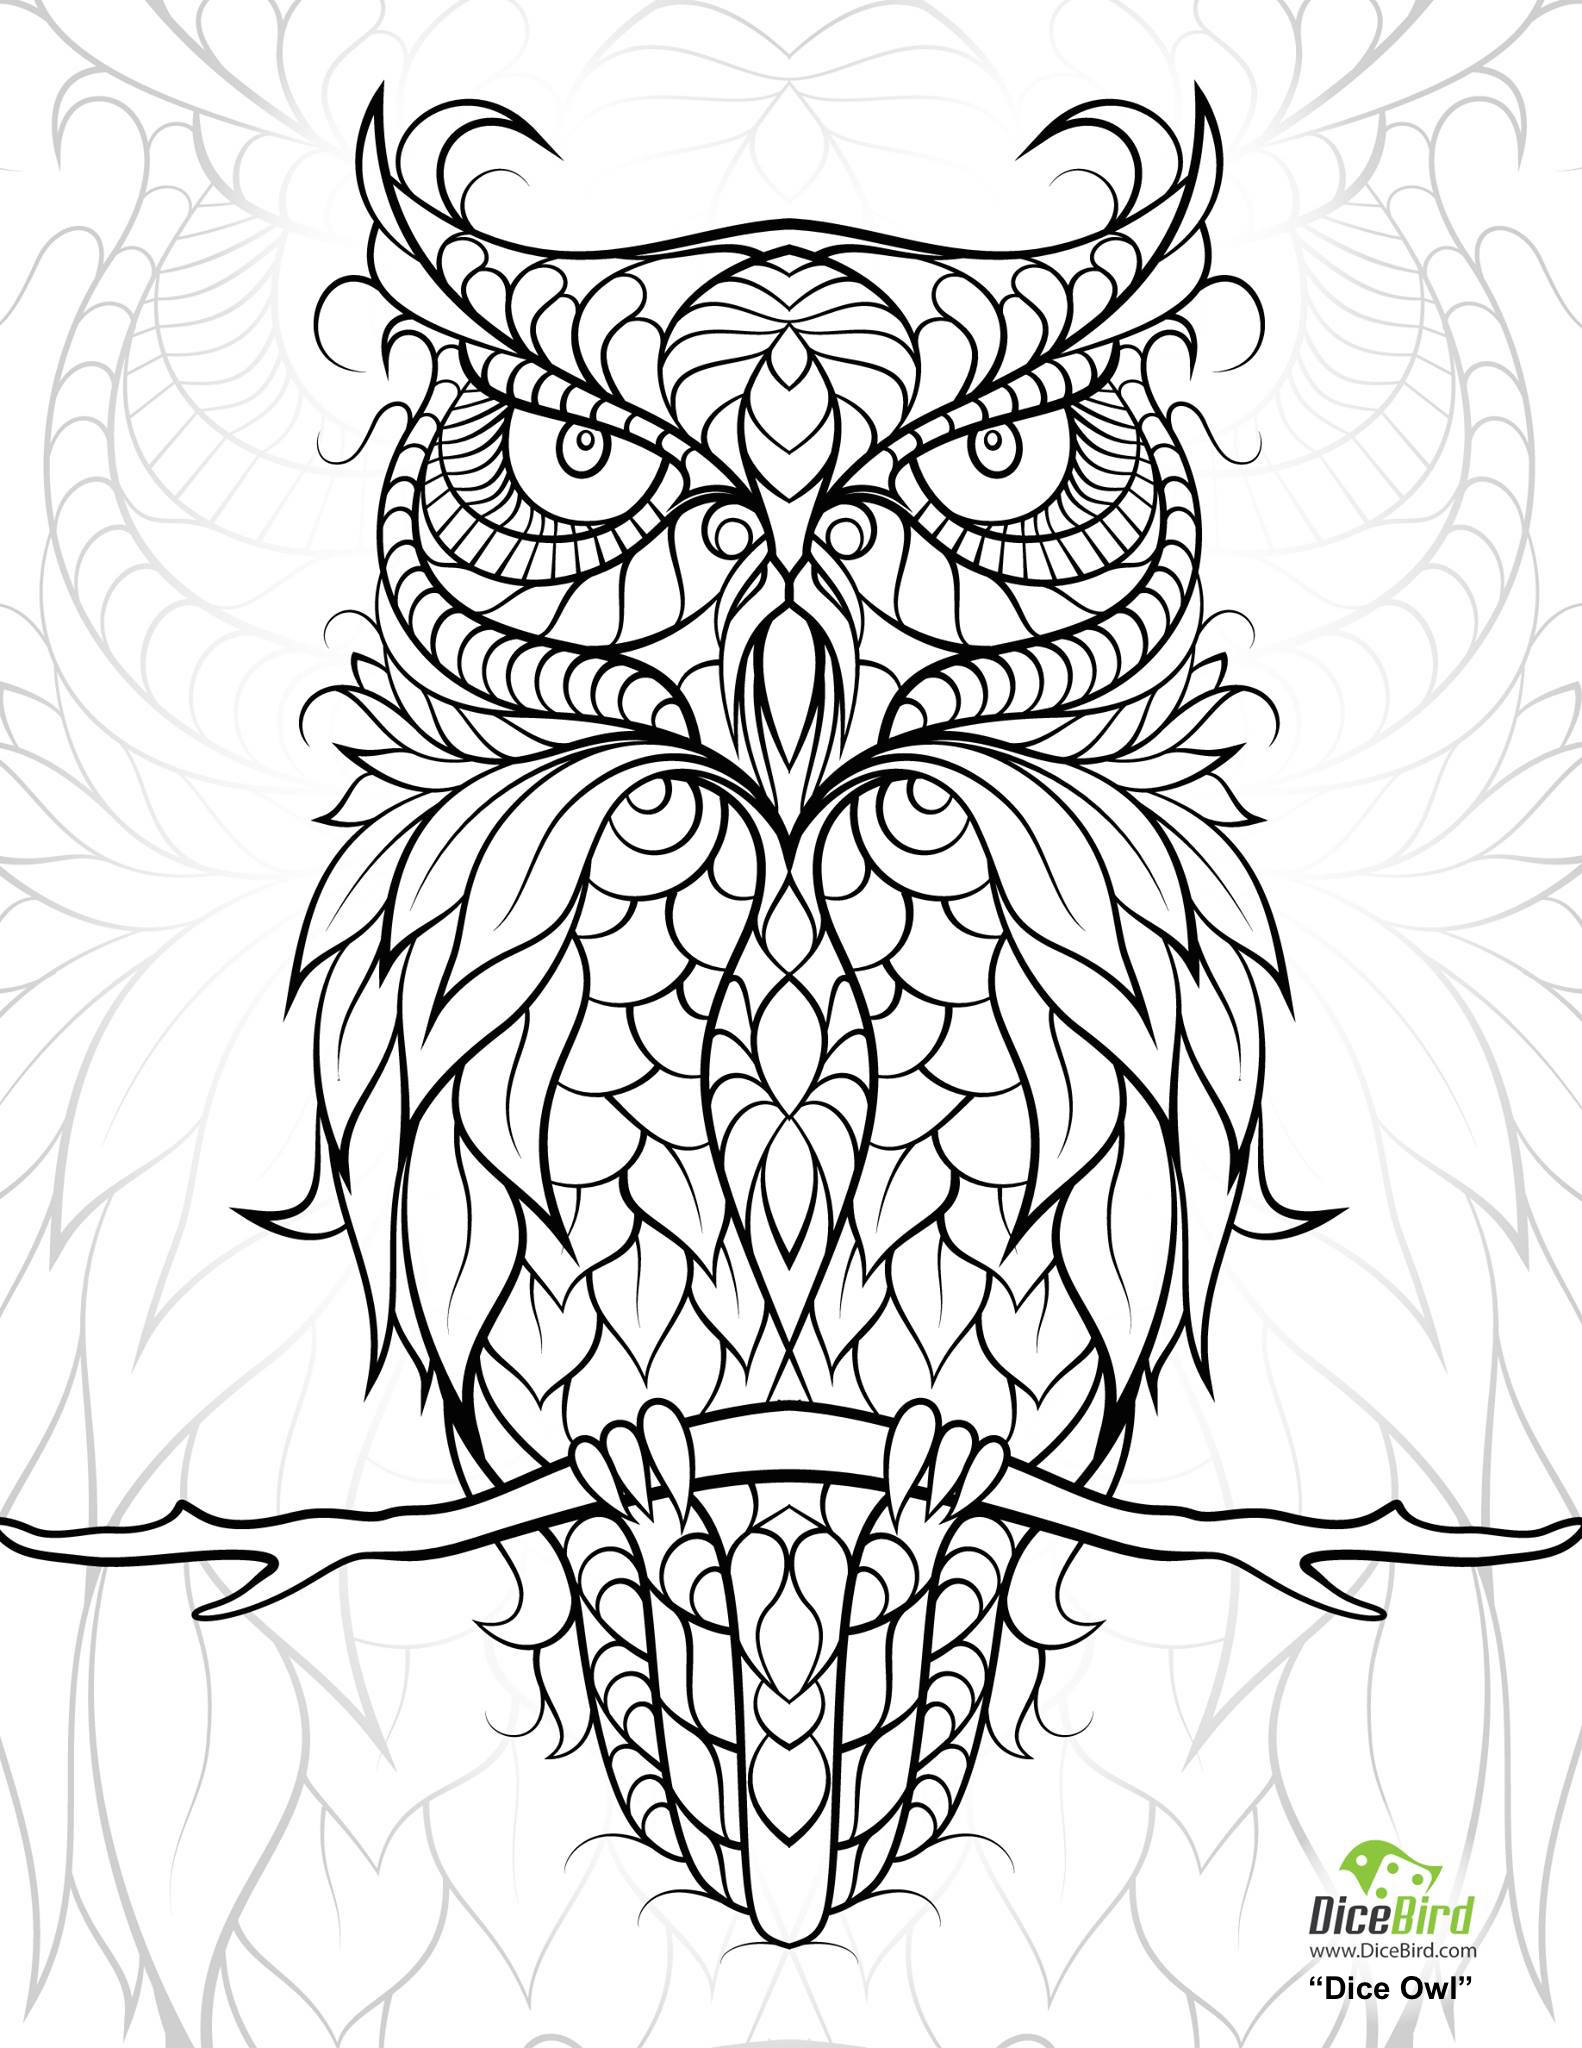 Free coloring pages for adults -  Free Coloring Pages For Adults 33 Download